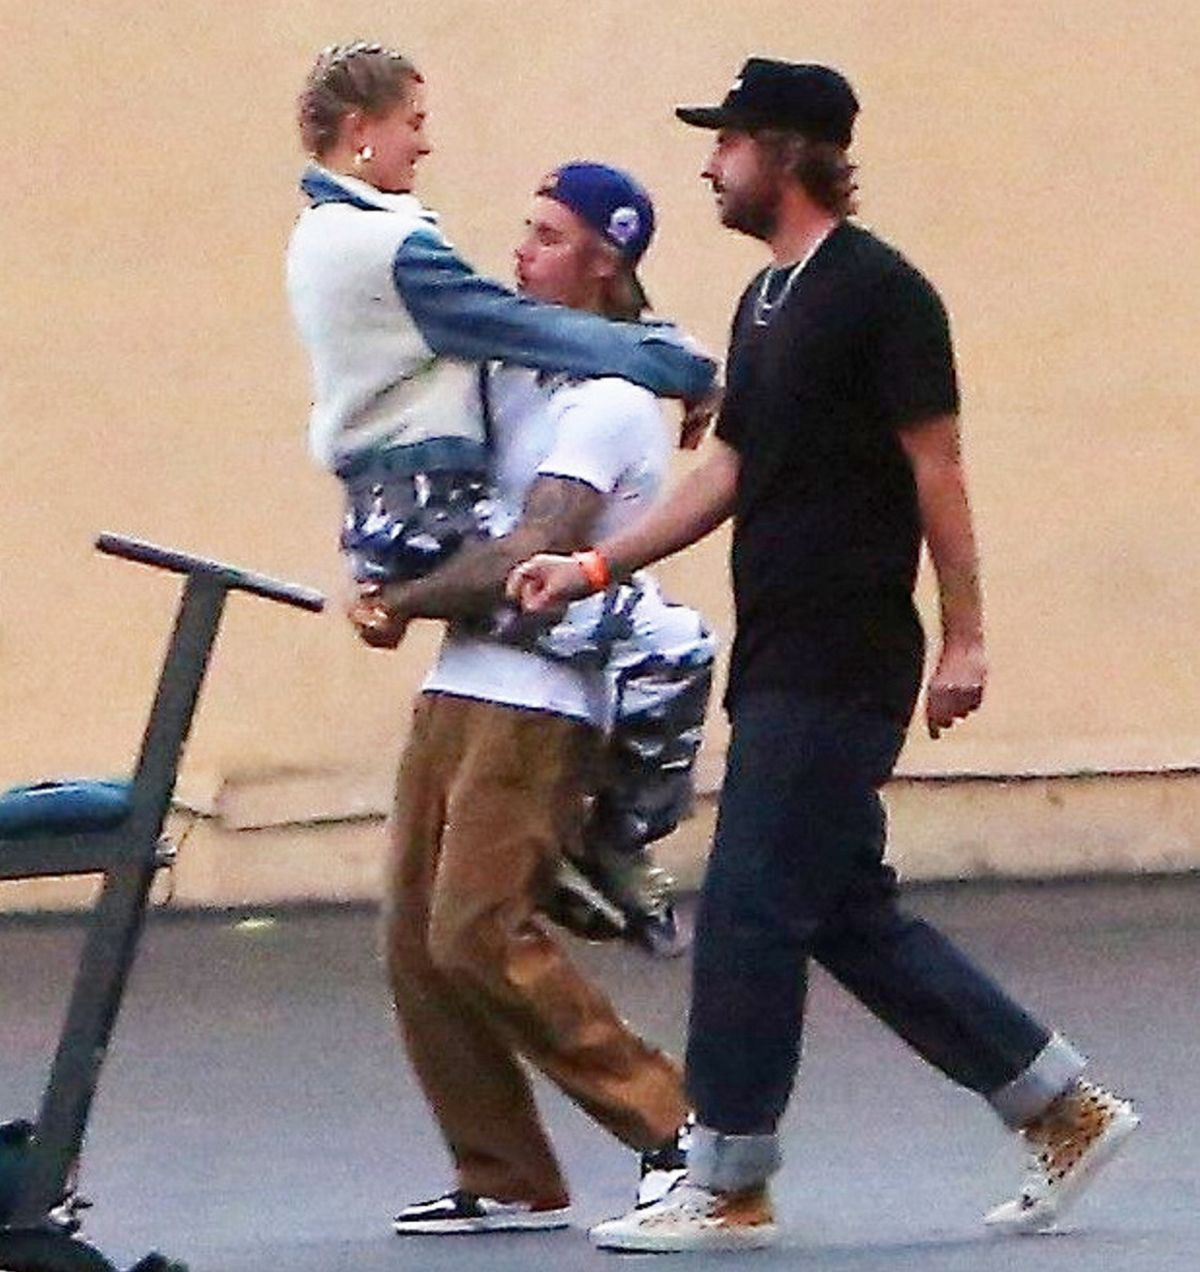 Justin Bieber & Hailey Baldwin get intimate as they talk a